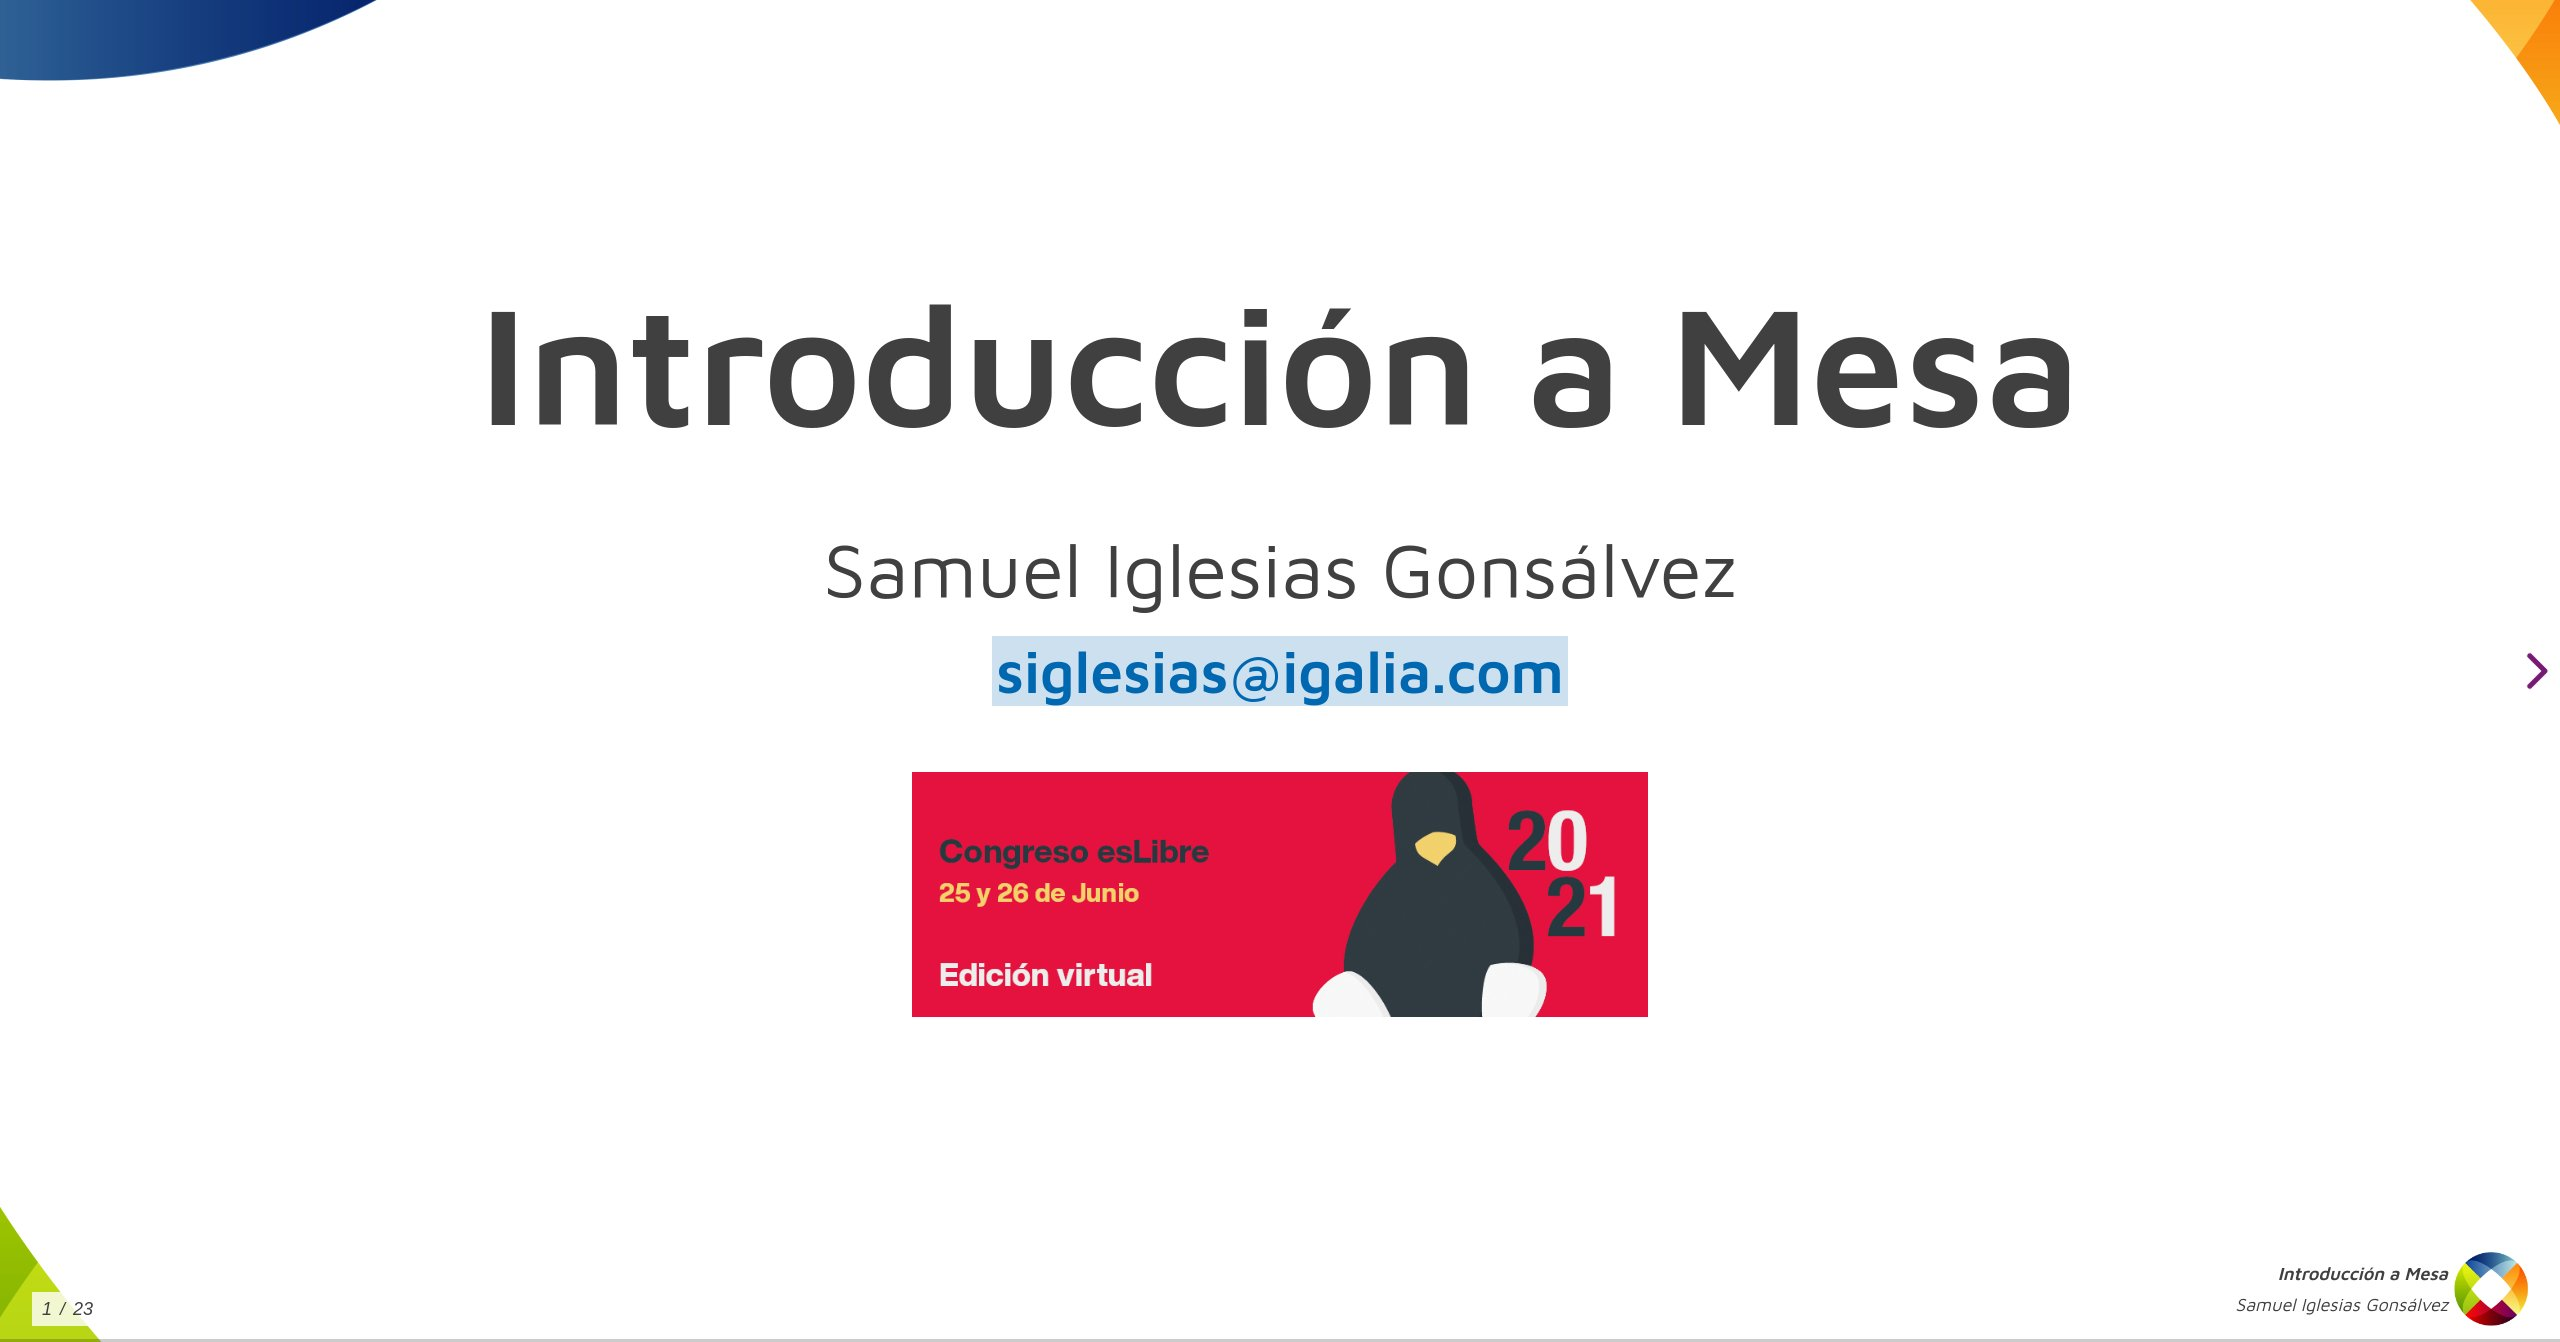 Introduction to Mesa